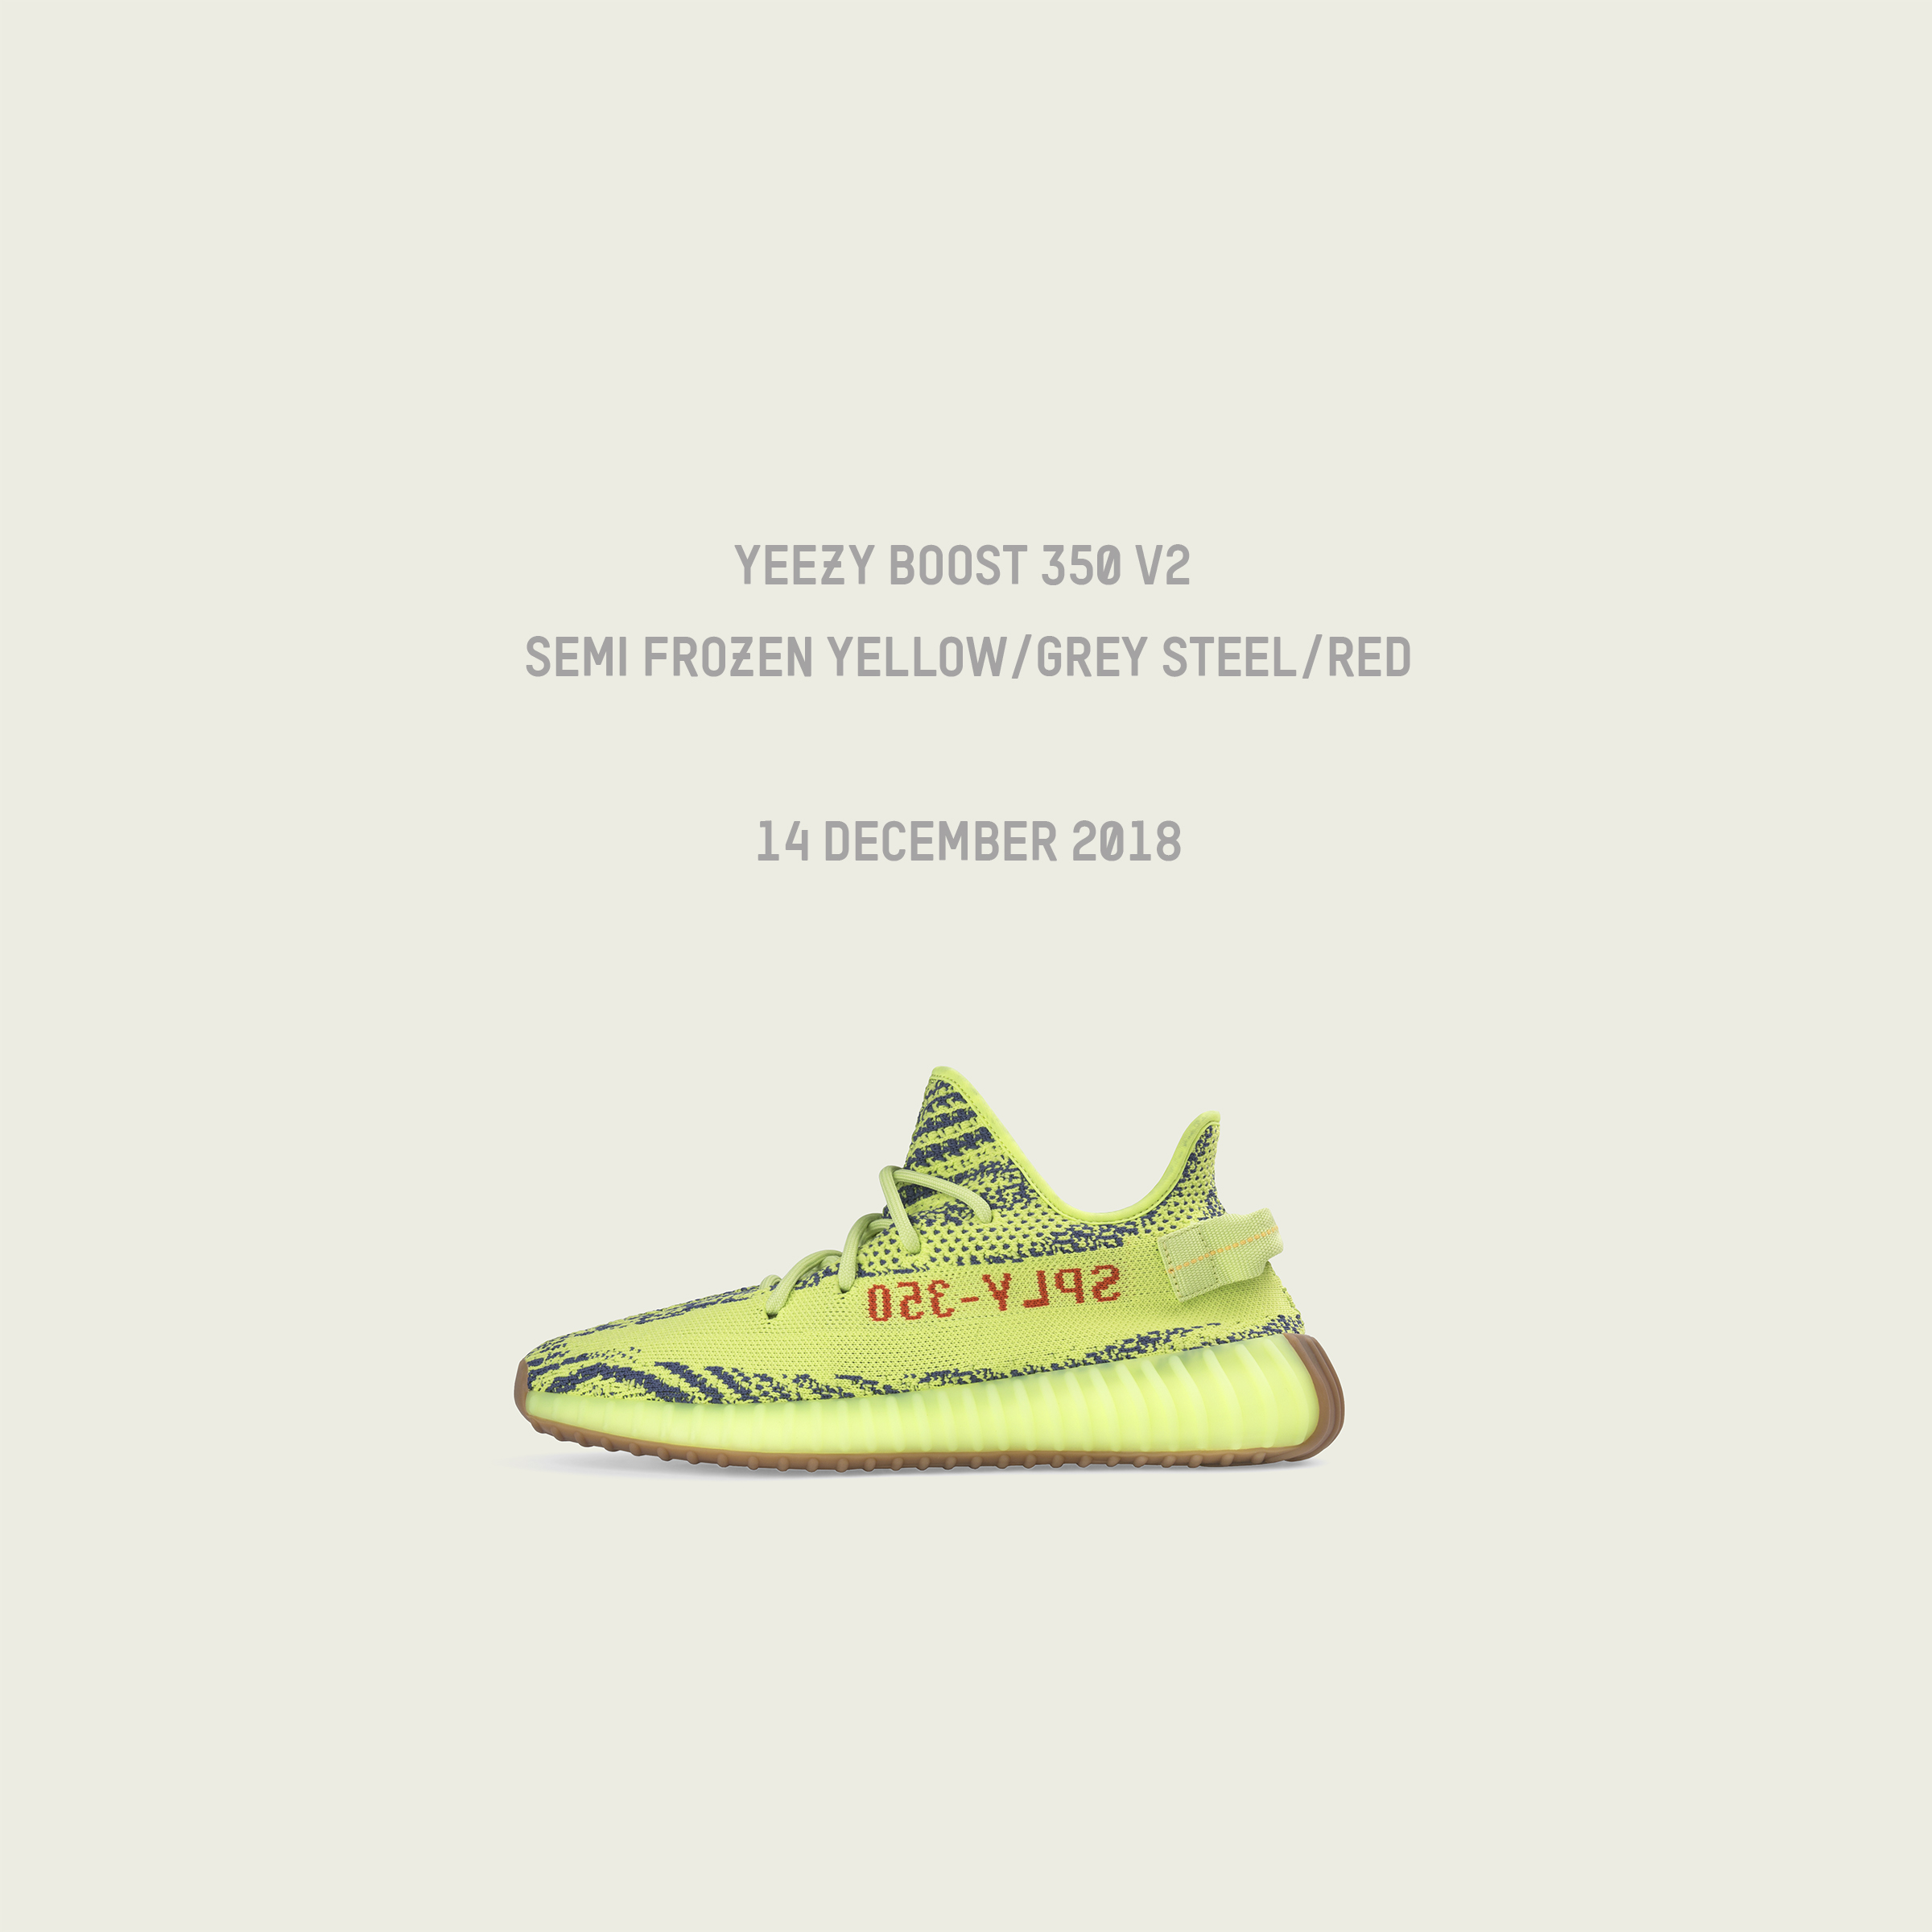 c8542530d NEXT RELEASE YEEZY 350 V2 SEMI FROZEN YELLOW. Kanye West and Adidas ...